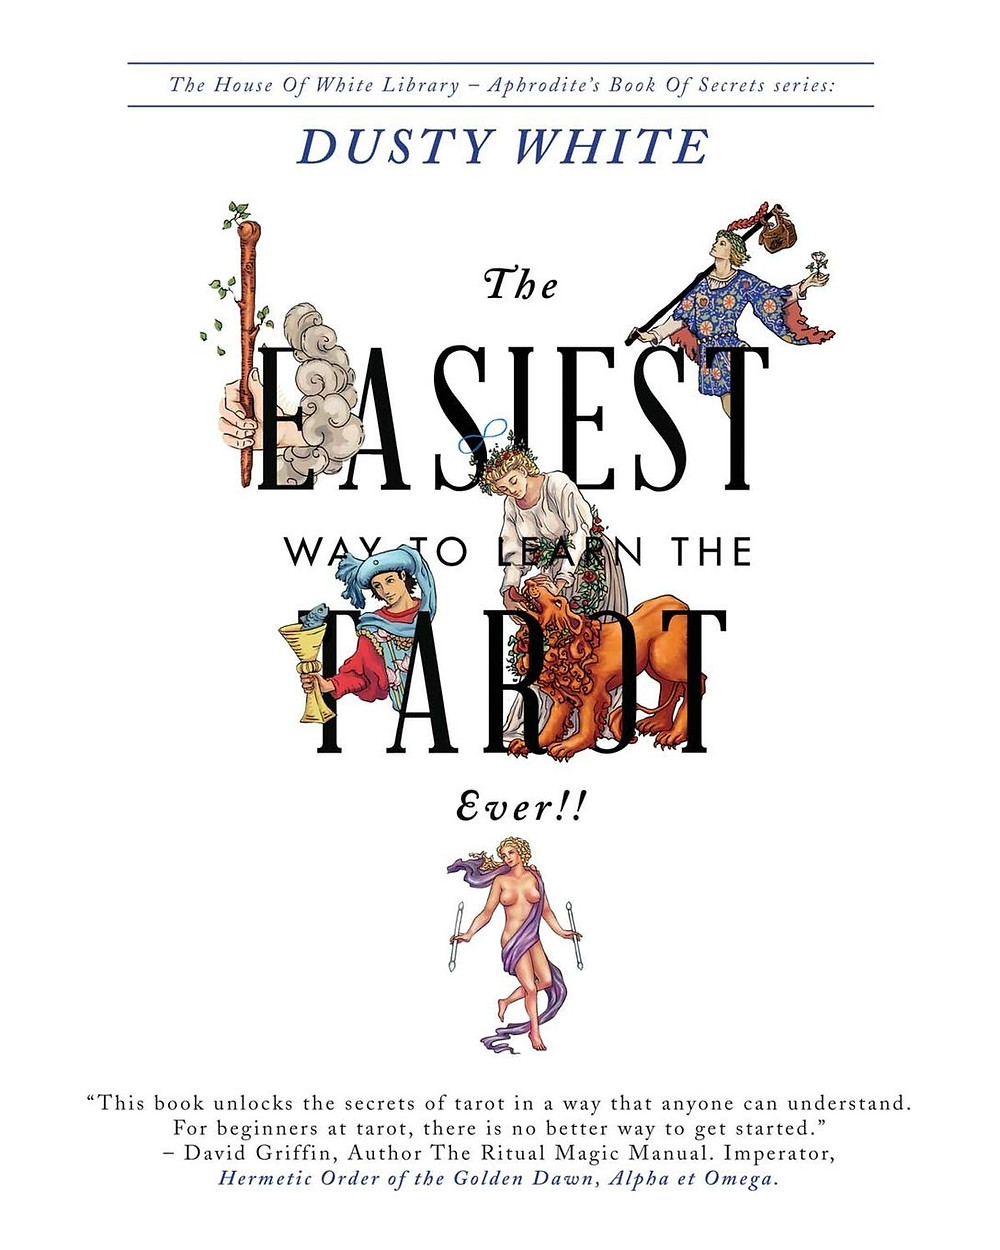 Front cover of Dusty White's book 'The Easiest Way to Learn the Tarot Ever!'